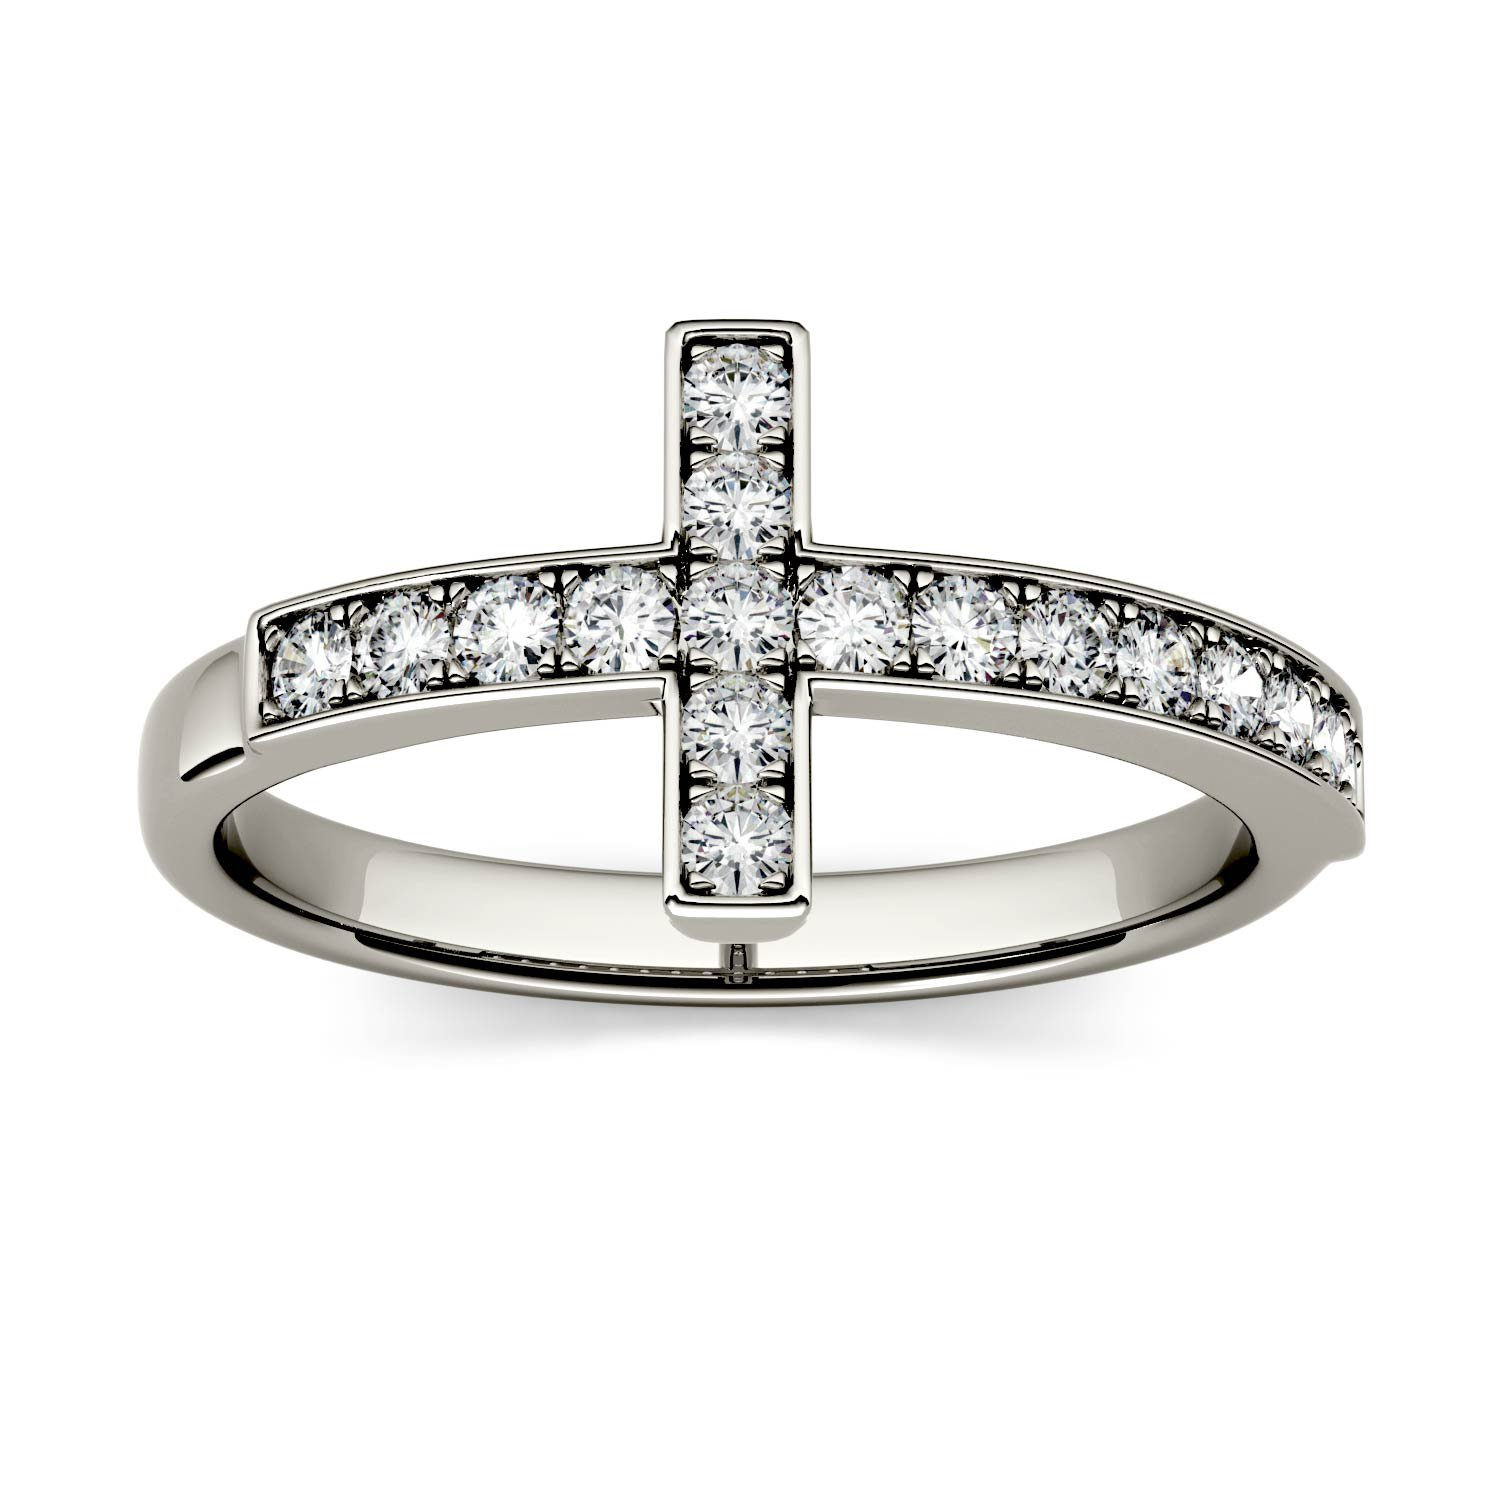 Forever Classic 1.7mm Round Cross Ring-size 5, 0.34cttw DEW By Charles & Colvard